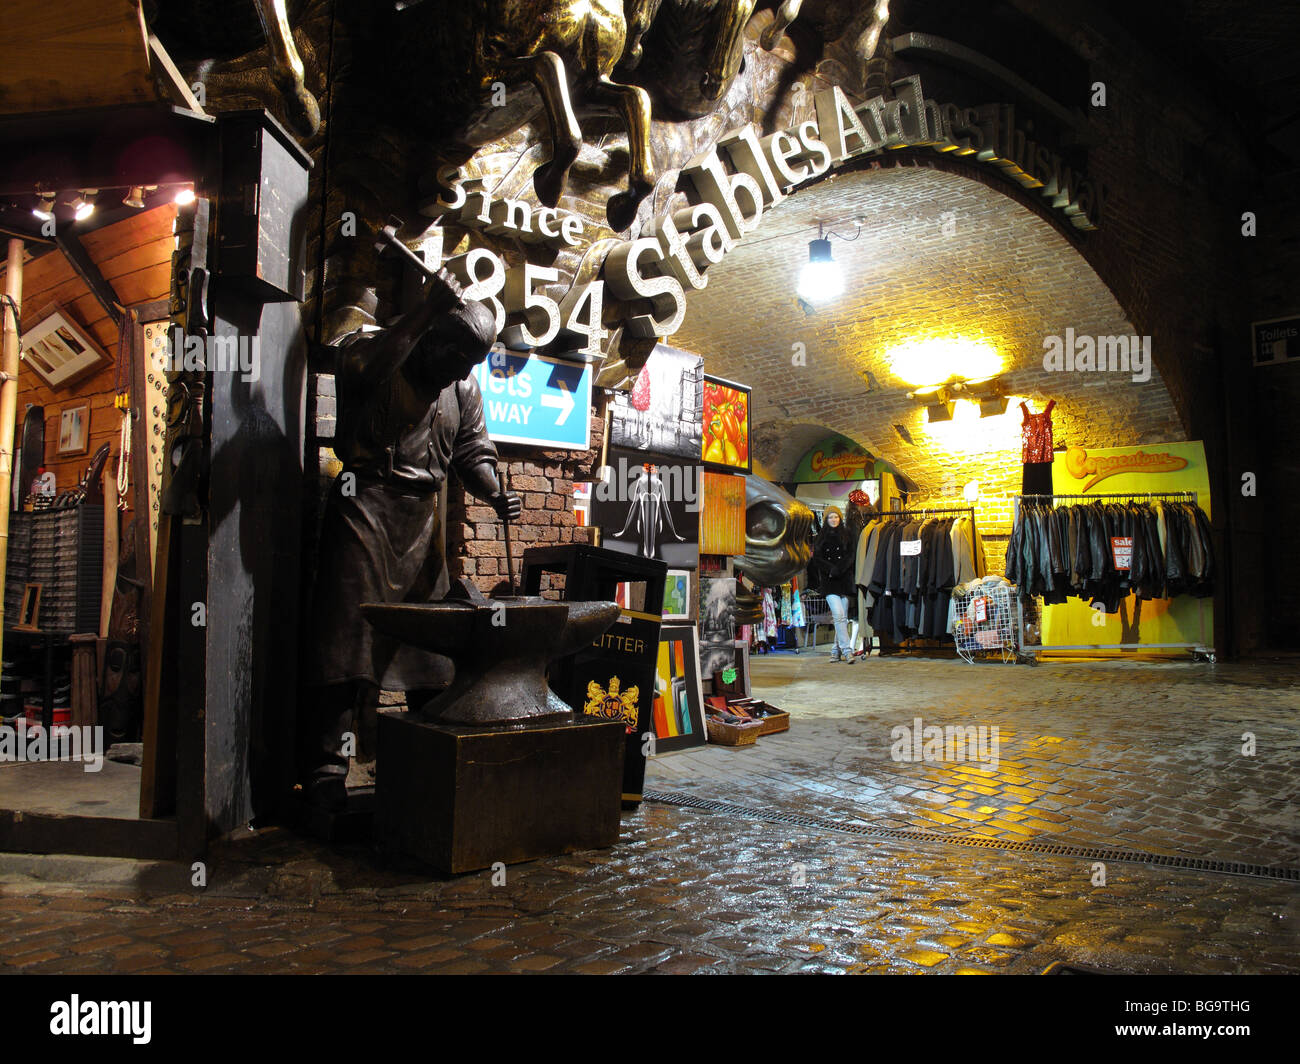 Stables Arches, Camden Market, London - Stock Image